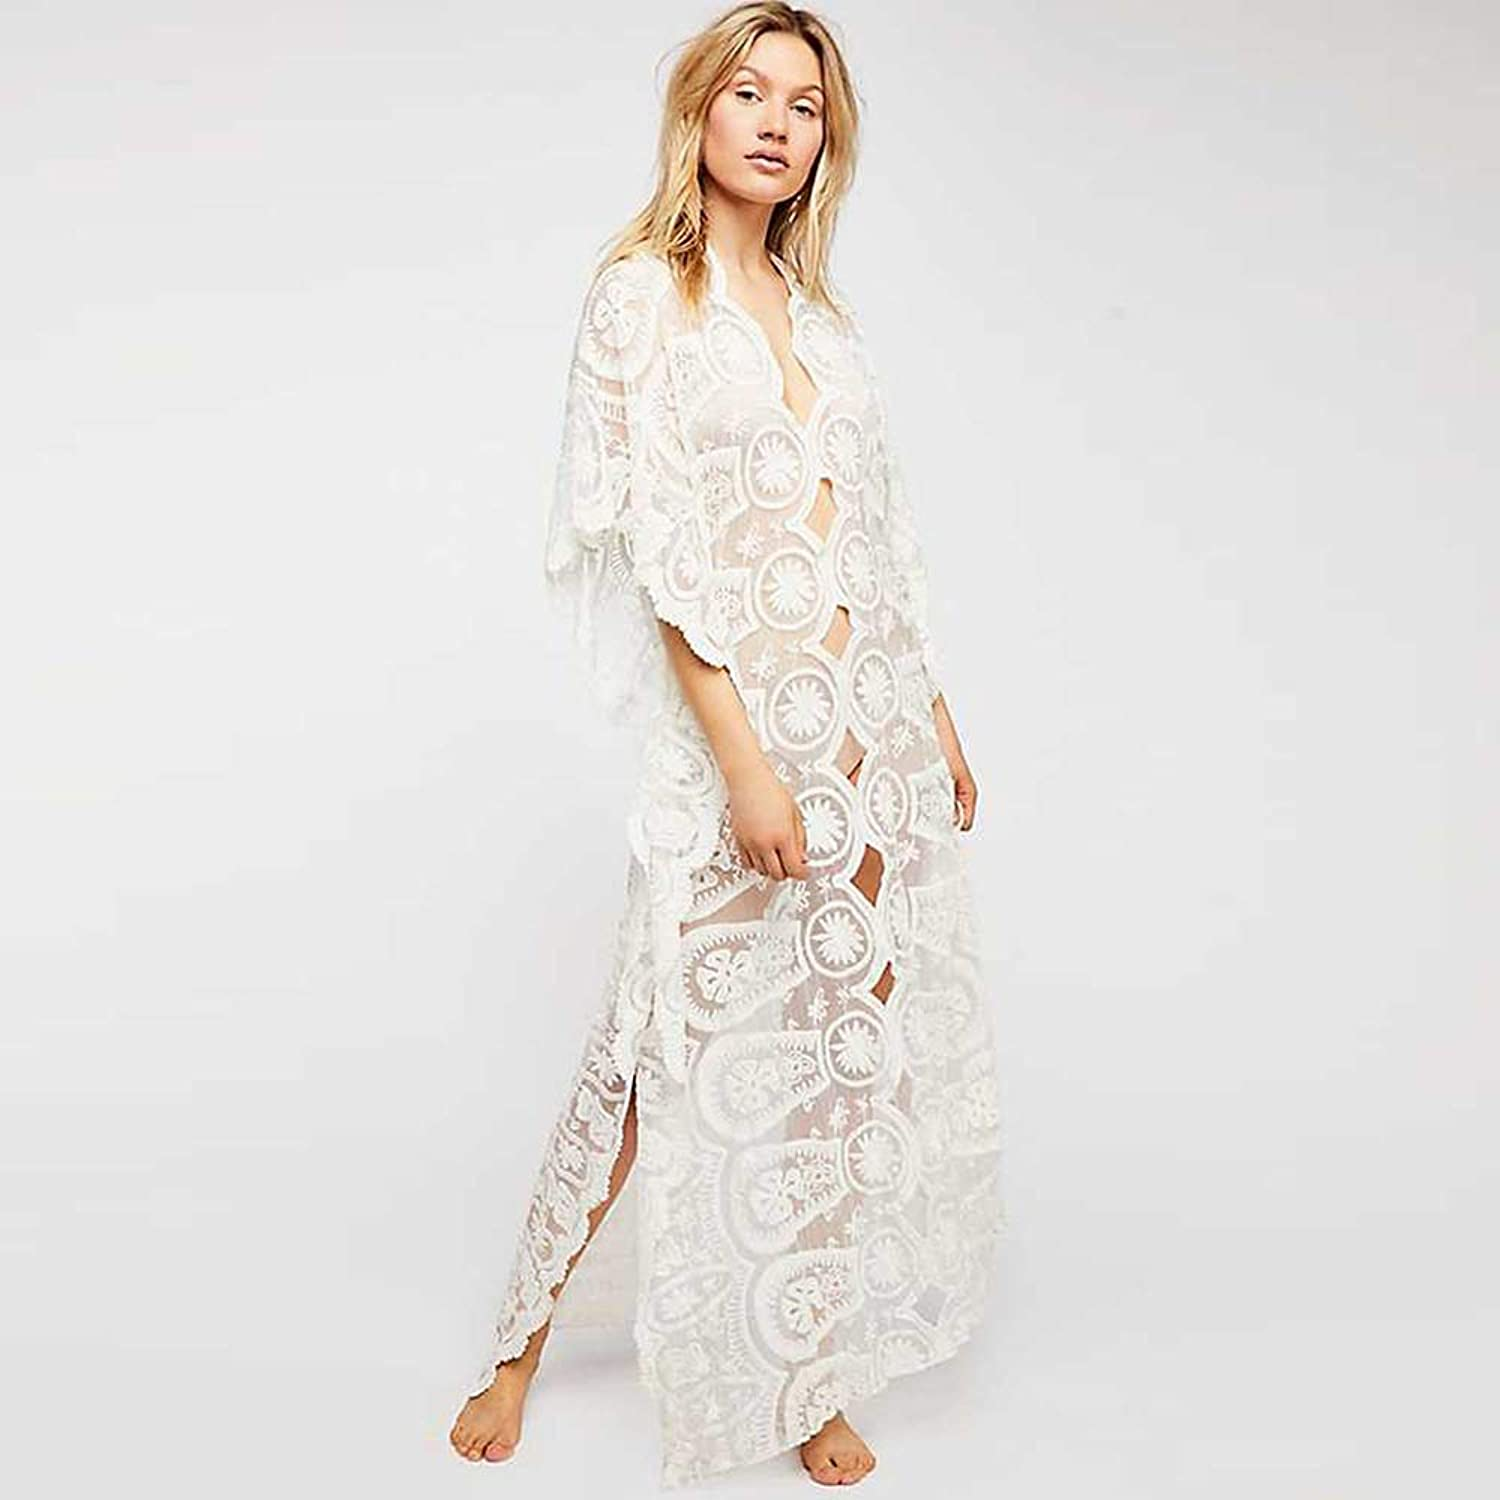 Women's Skirts Woman Lace Dress with Sleeve VNeck SevenQuarter Sleeve Hollow Solid color Slim Fit Sexy Beach, Vacation (color   White, Size   L)